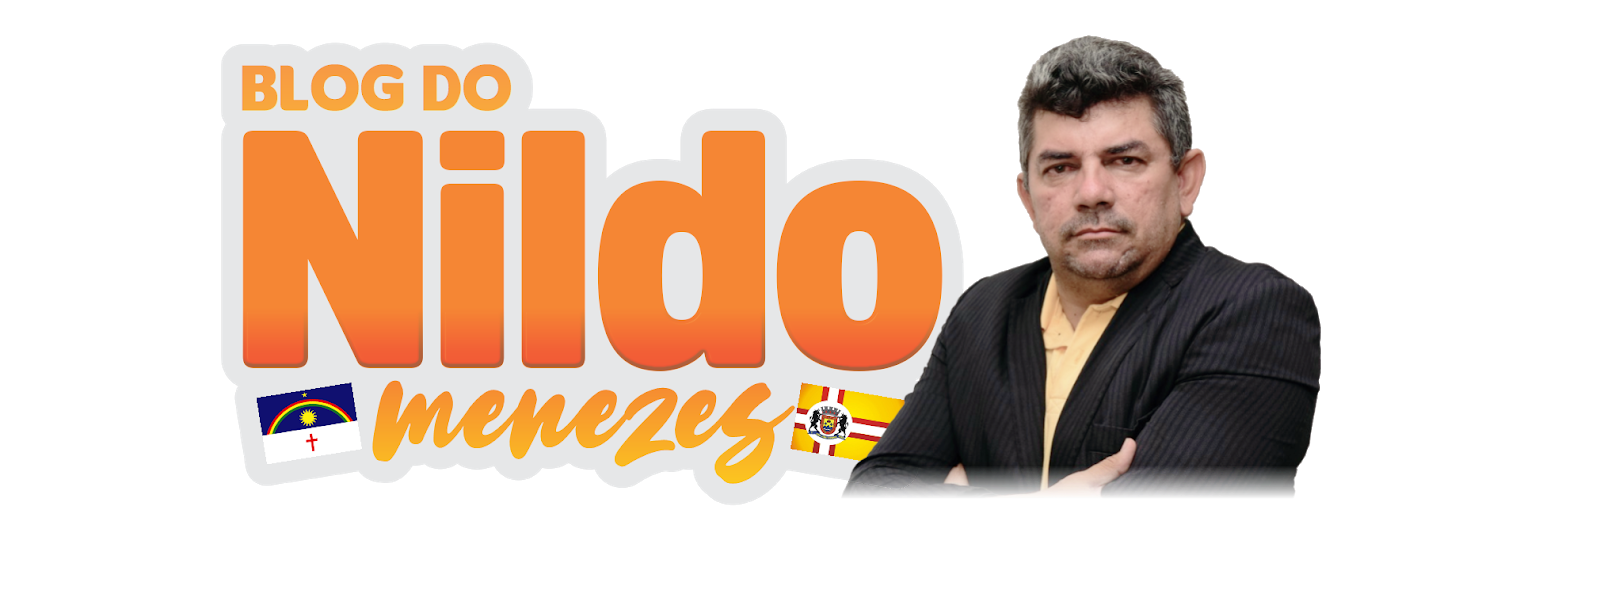 Blog do Nildo Menezes